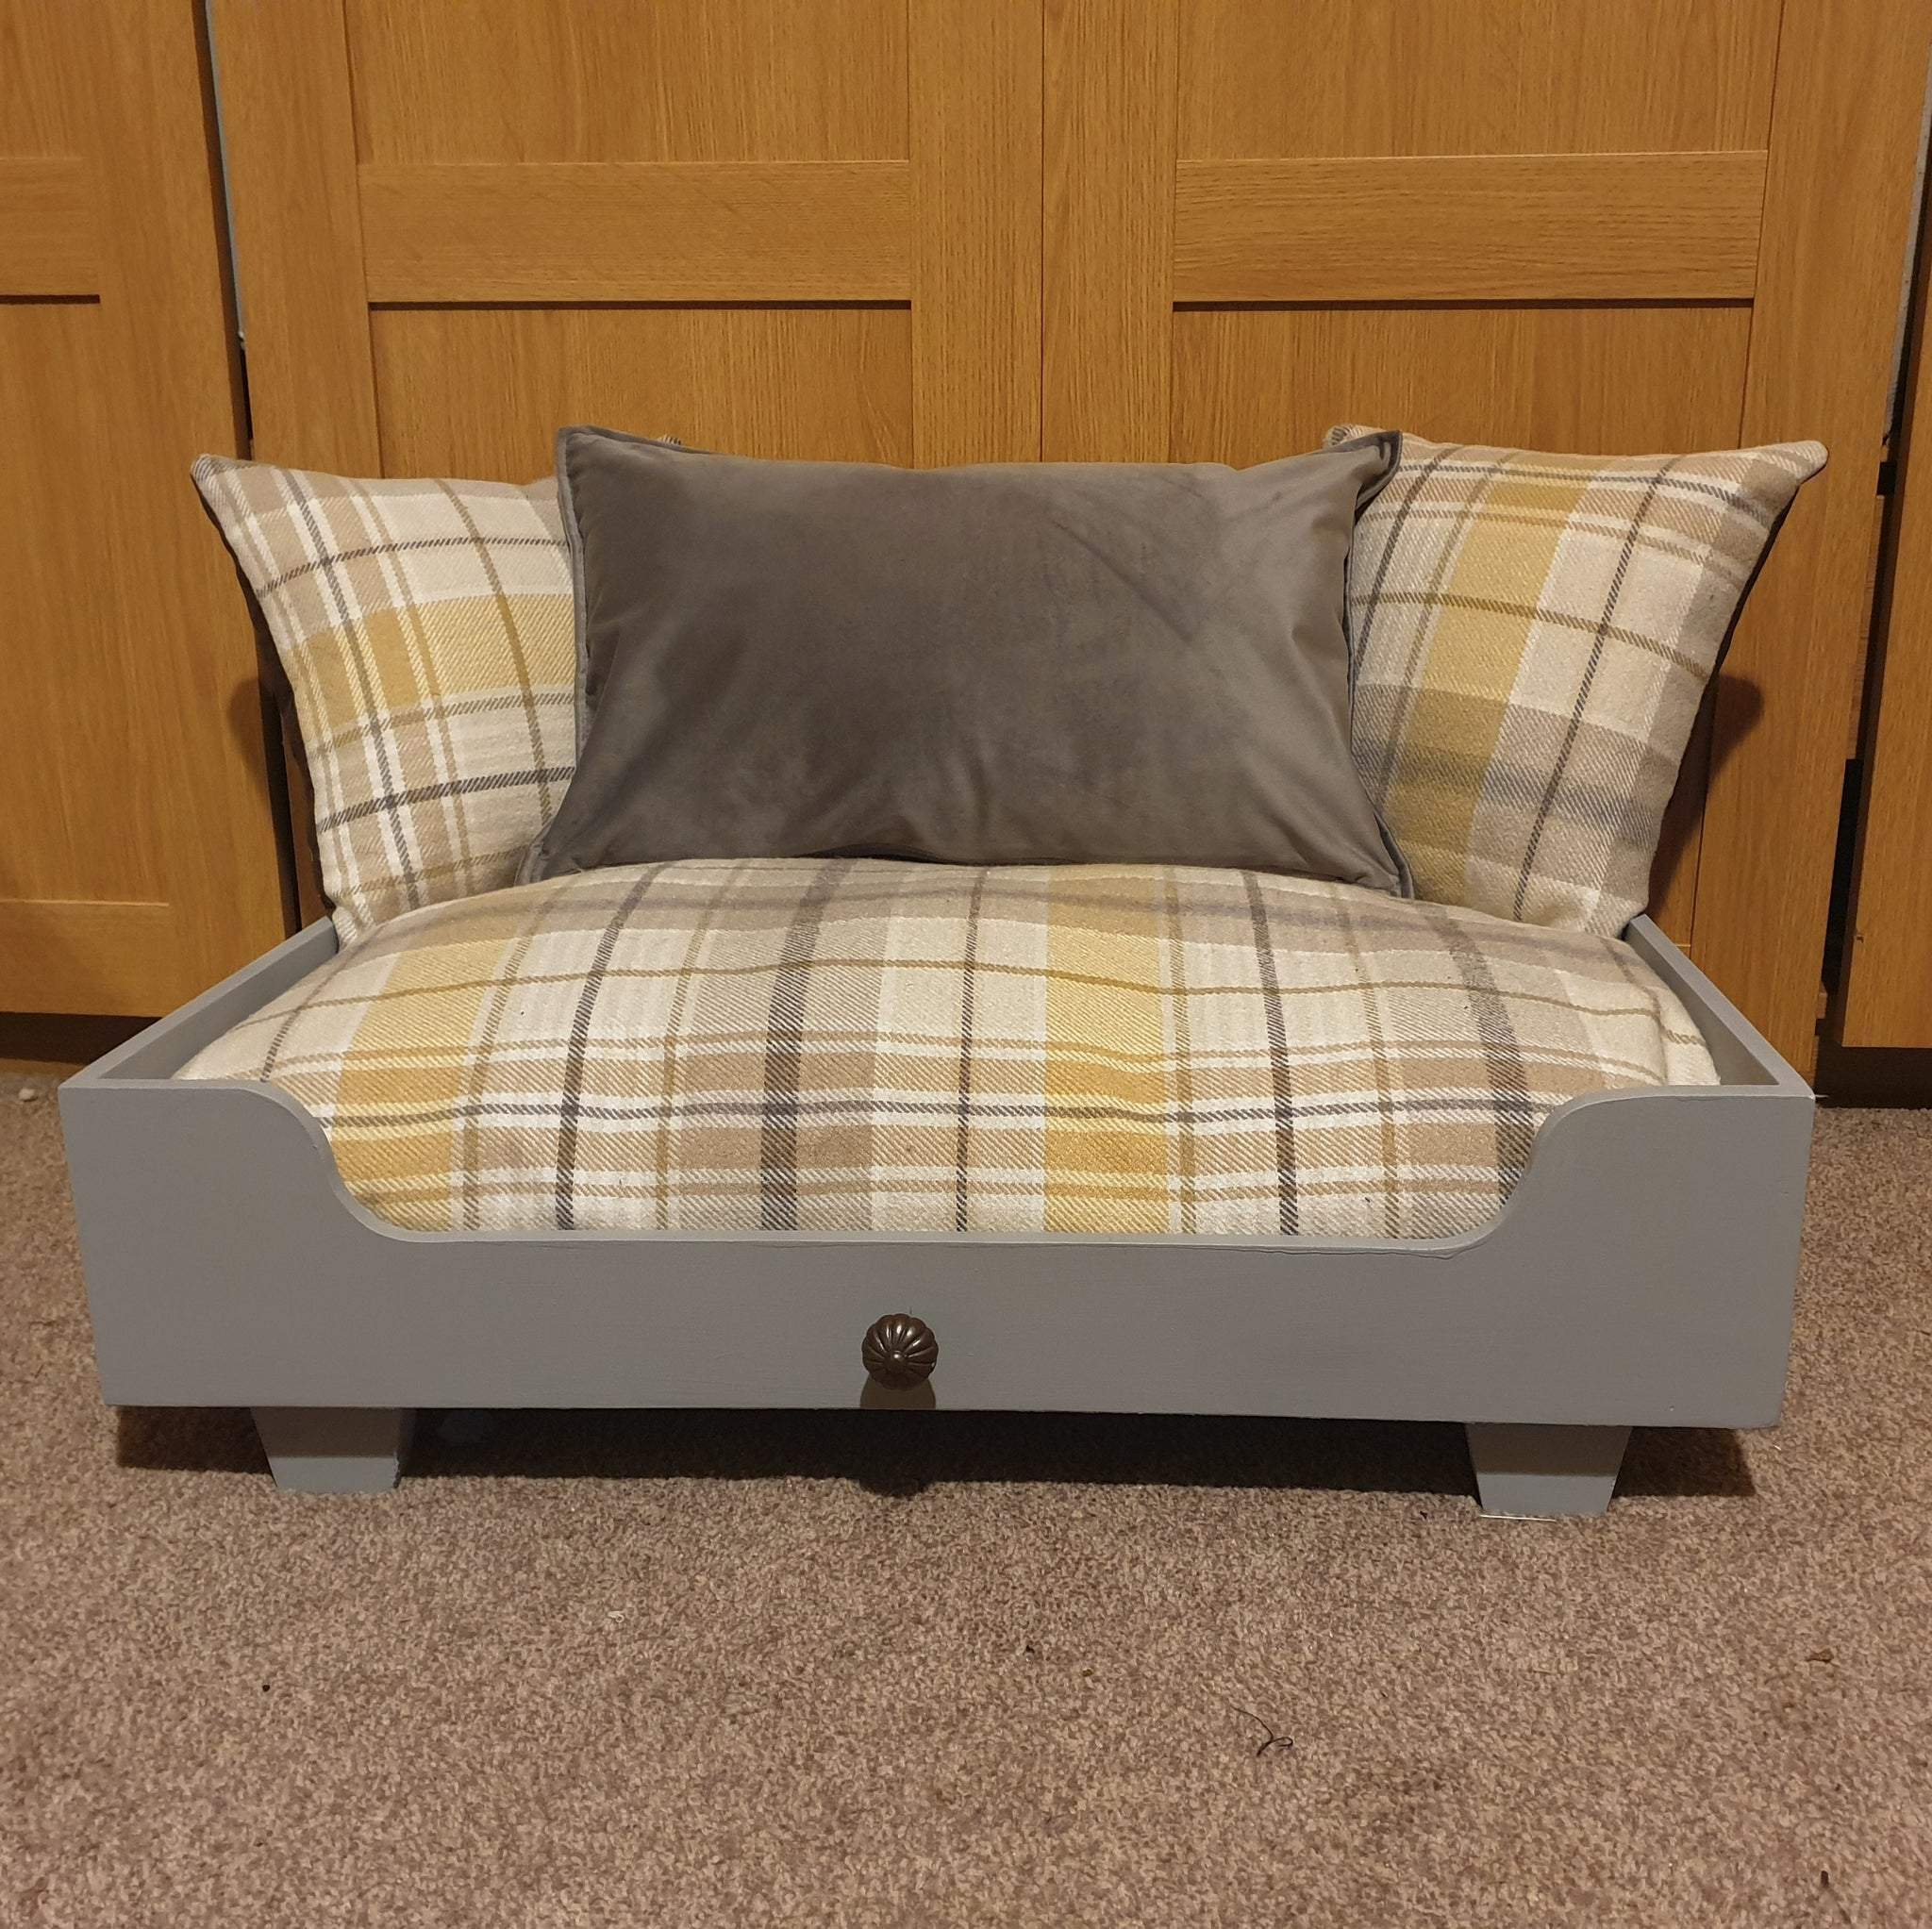 Handmade Dog Bed